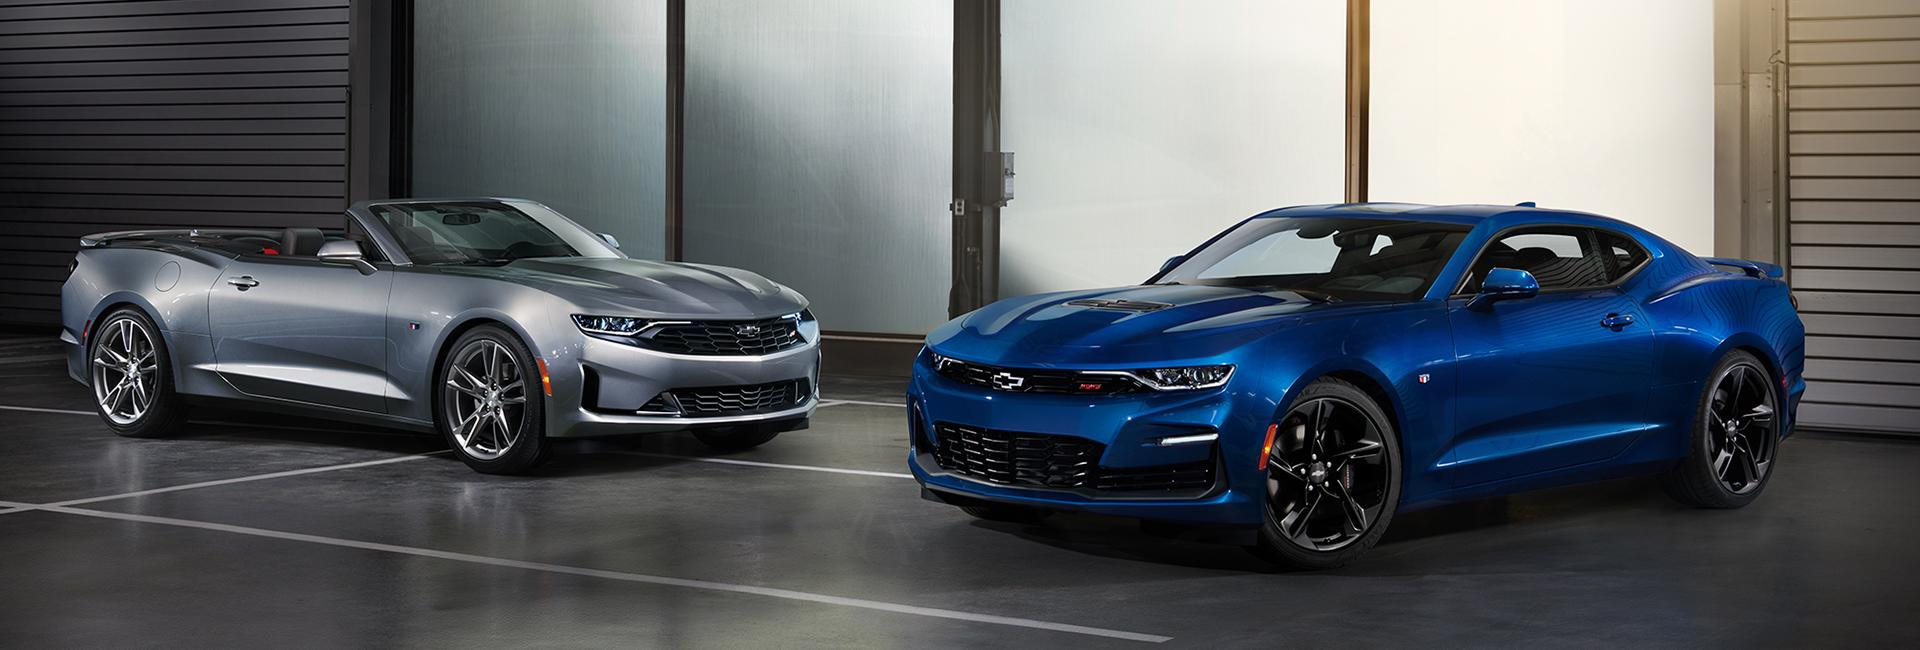 Picture of the 2020 Chevy Camaro for sale at Spitzer Chevy North Canton.